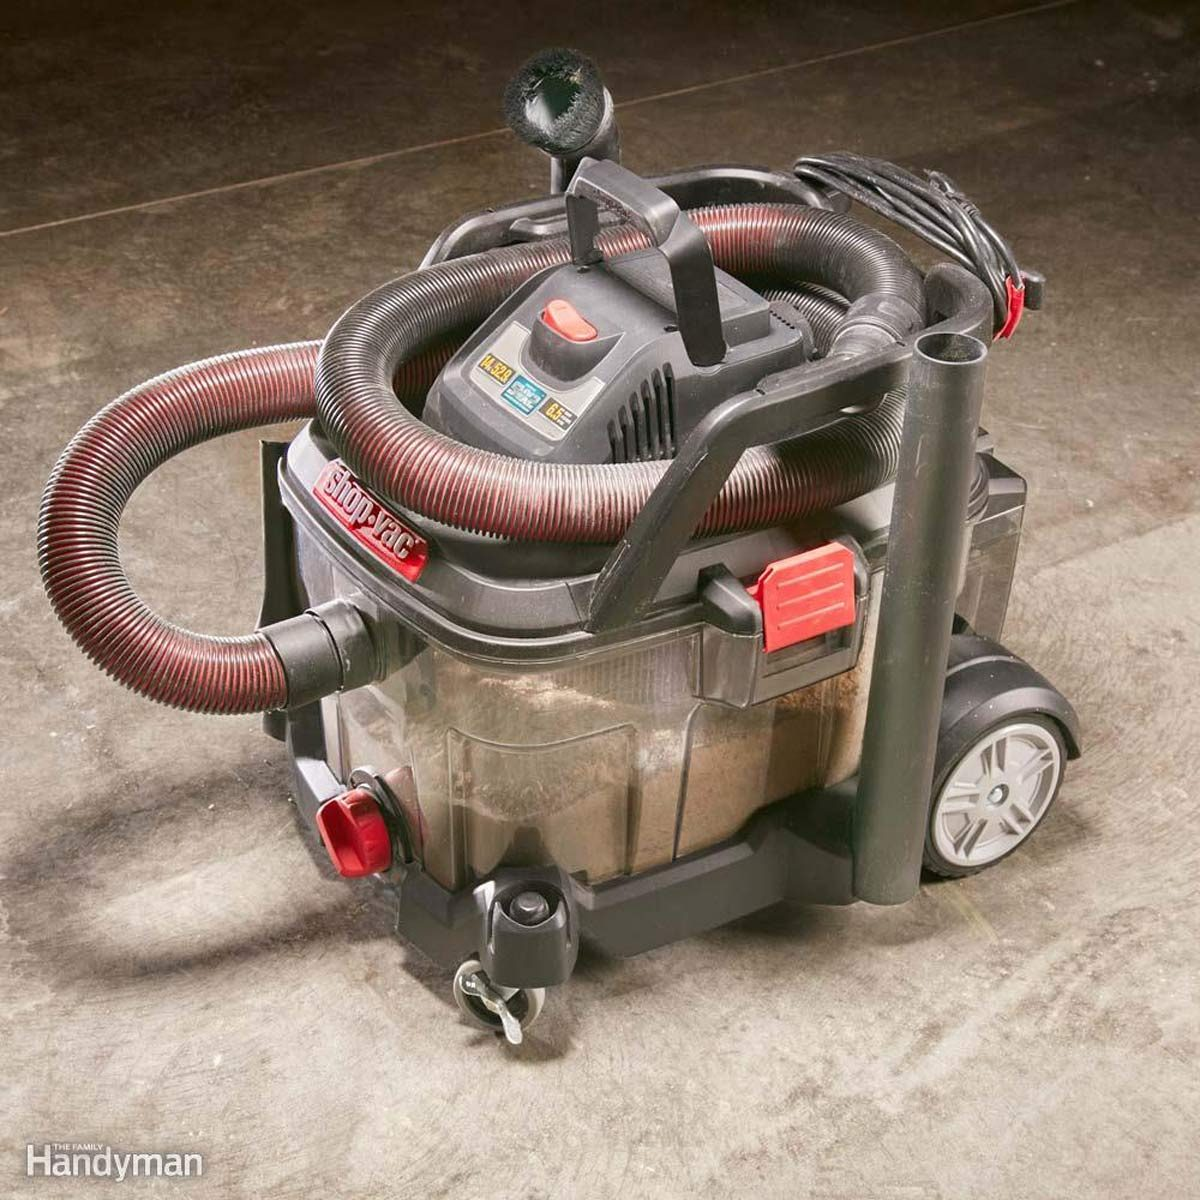 A Shop Vacuum with Features Galore